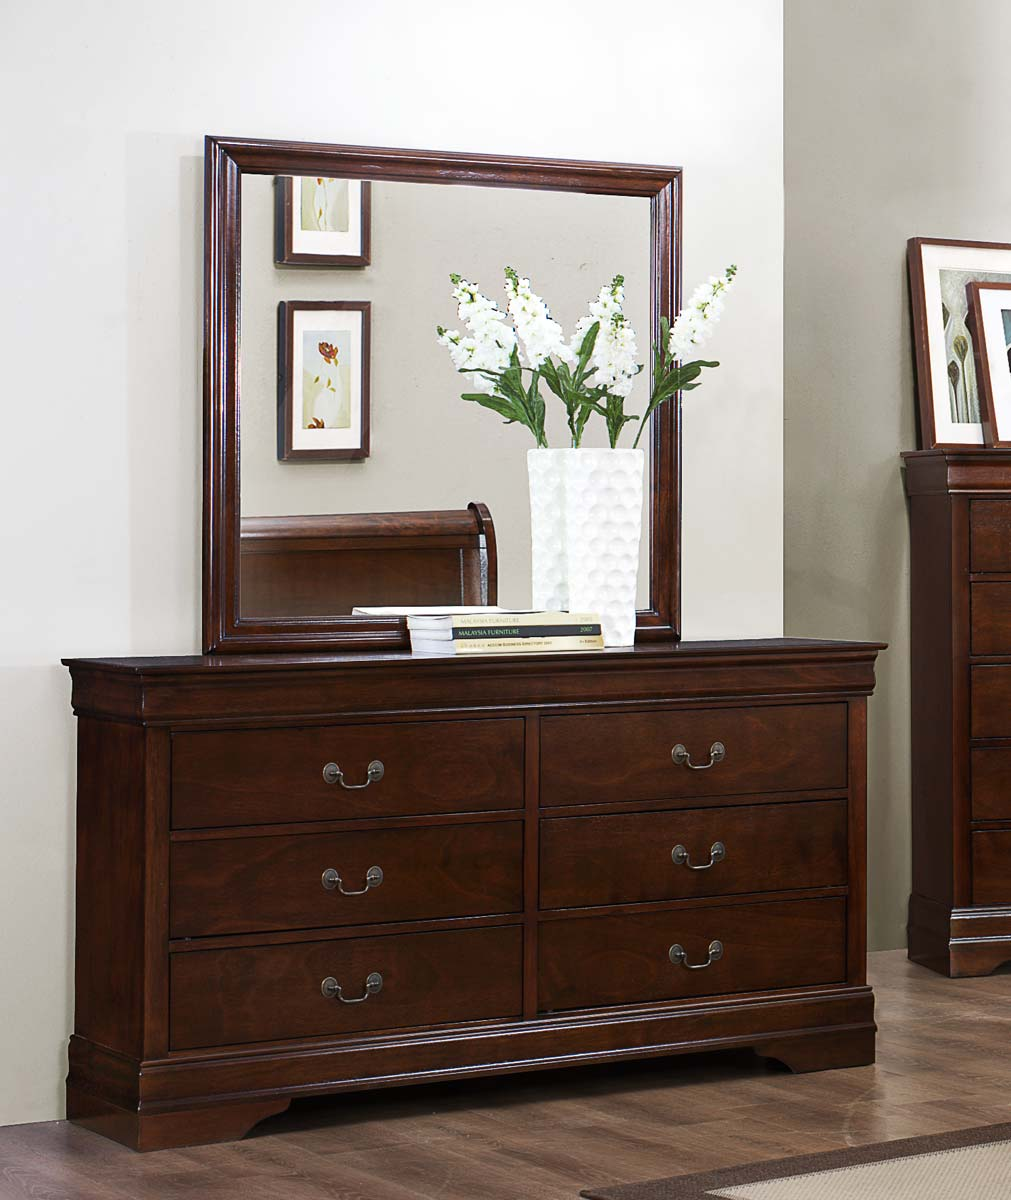 Homelegance Mayville Dresser - Burnished Brown Cherry